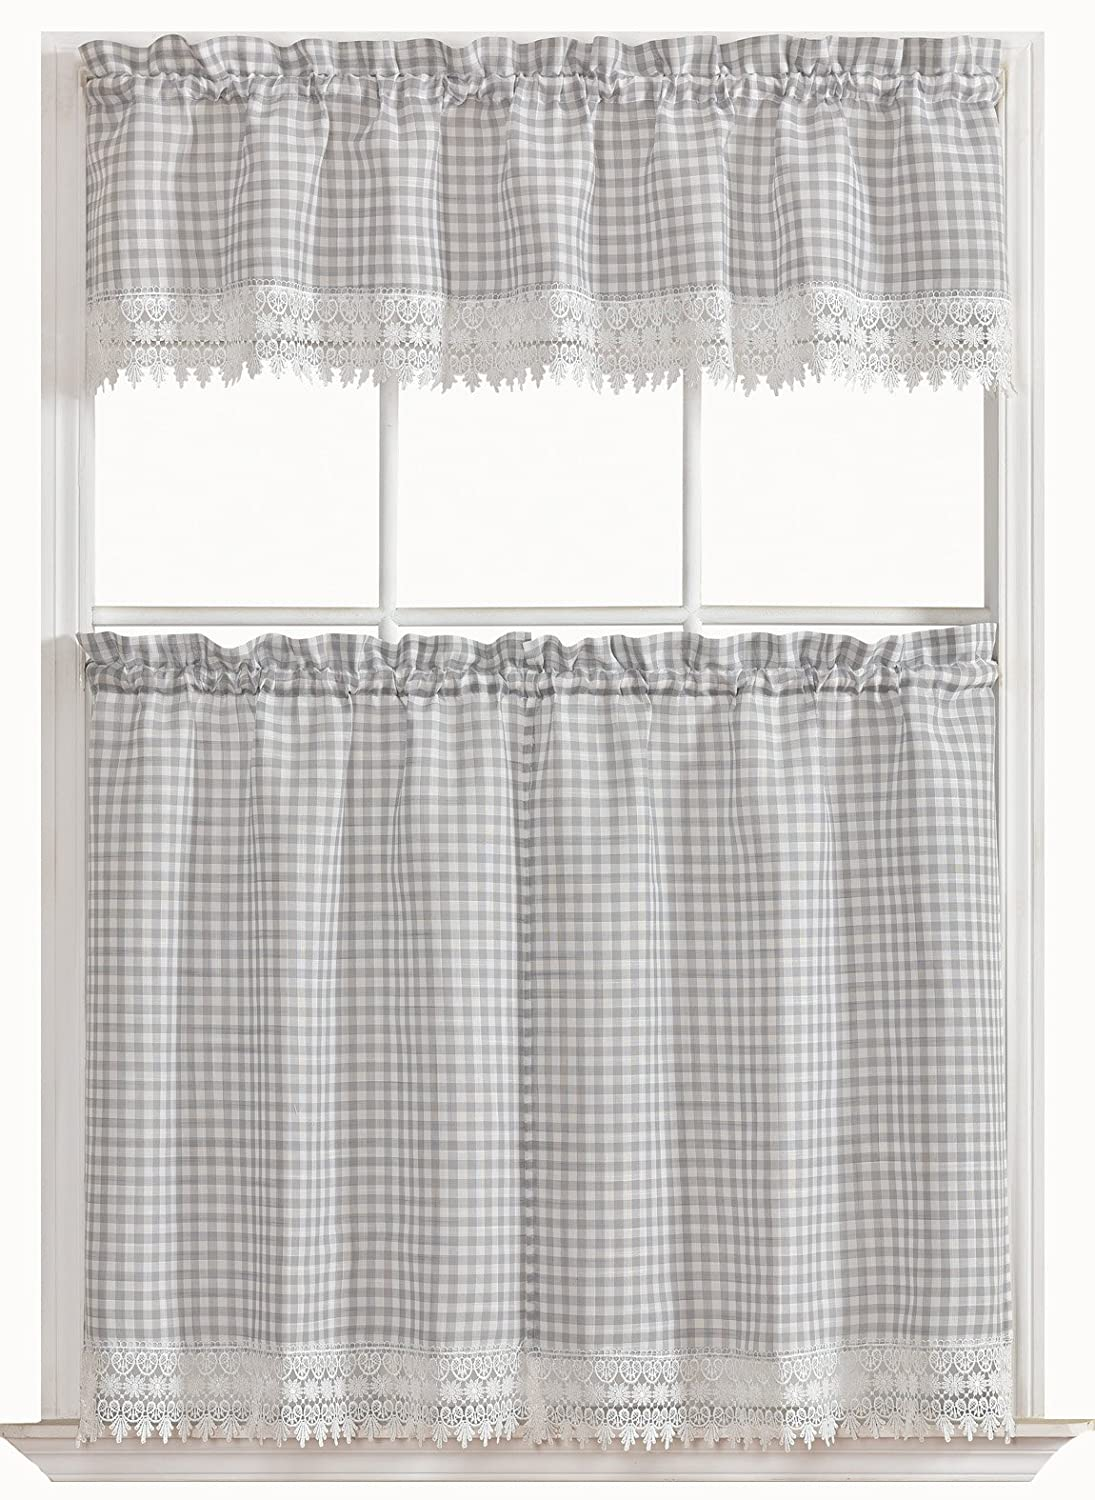 GoodGram Country Chic Plaid & Macrame Kitchen Curtain Tier & Valance Set - Assorted Colors (Gray)